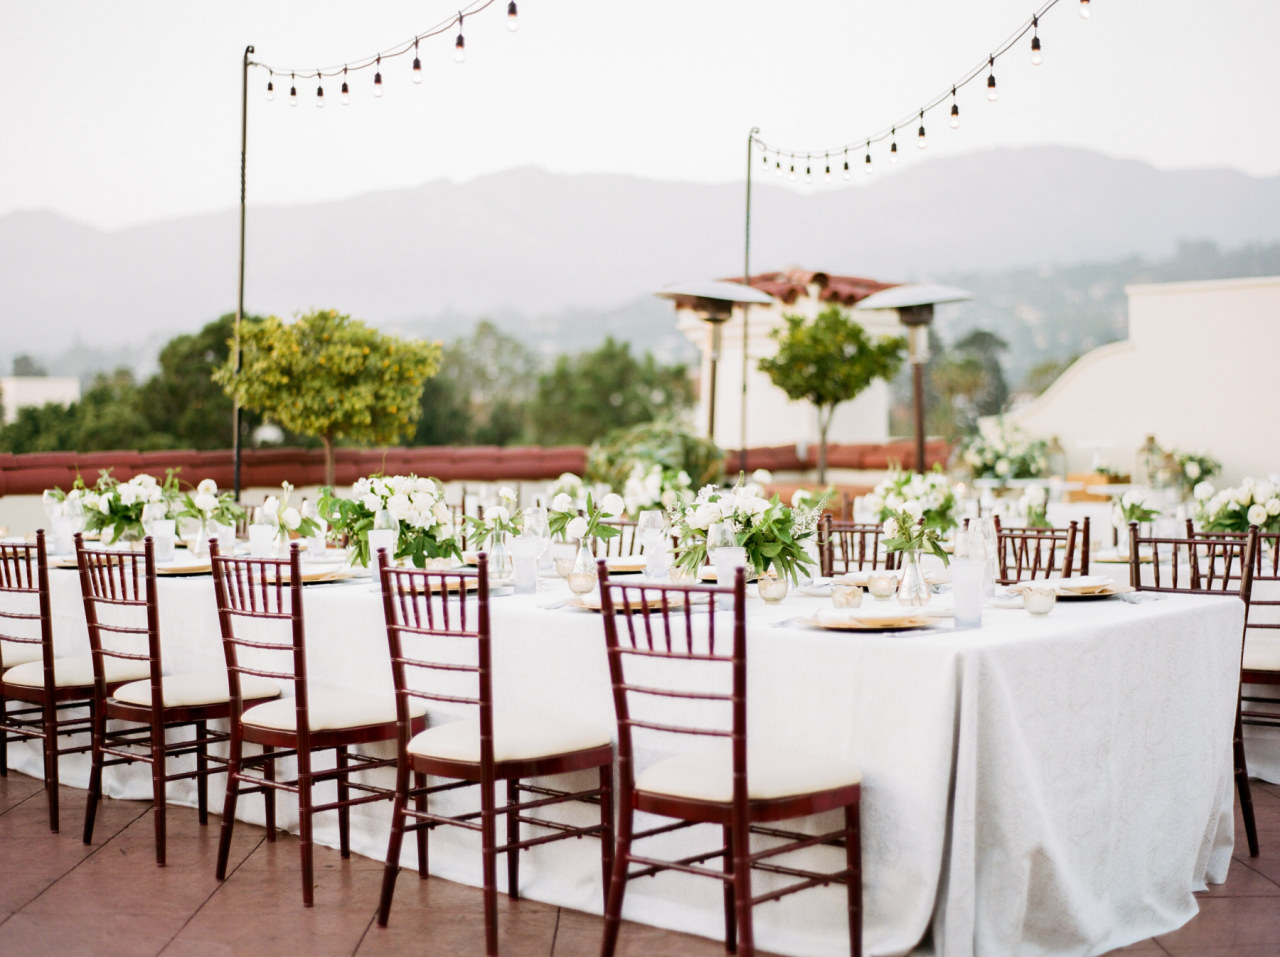 alegria-by-design-wedding-planner-planning-event-design-coordinator-day-of-canary-hotel-rooftop-beach-view-downtown-santa-barbara (27).jpg